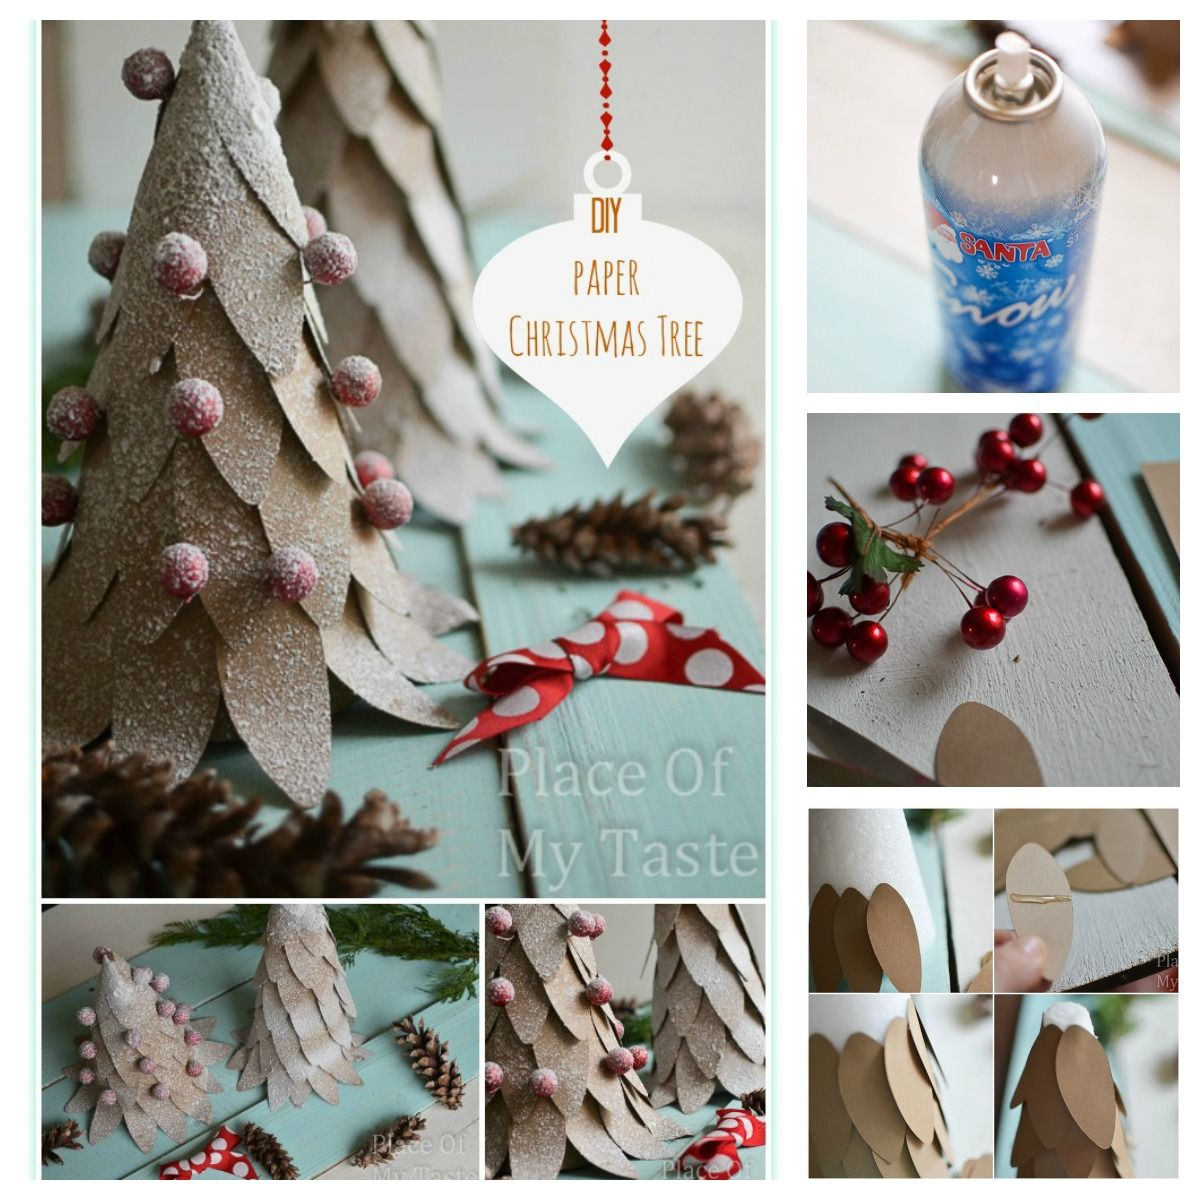 Diy Paper Christmas Tree Craft Pictures Photos And Images For